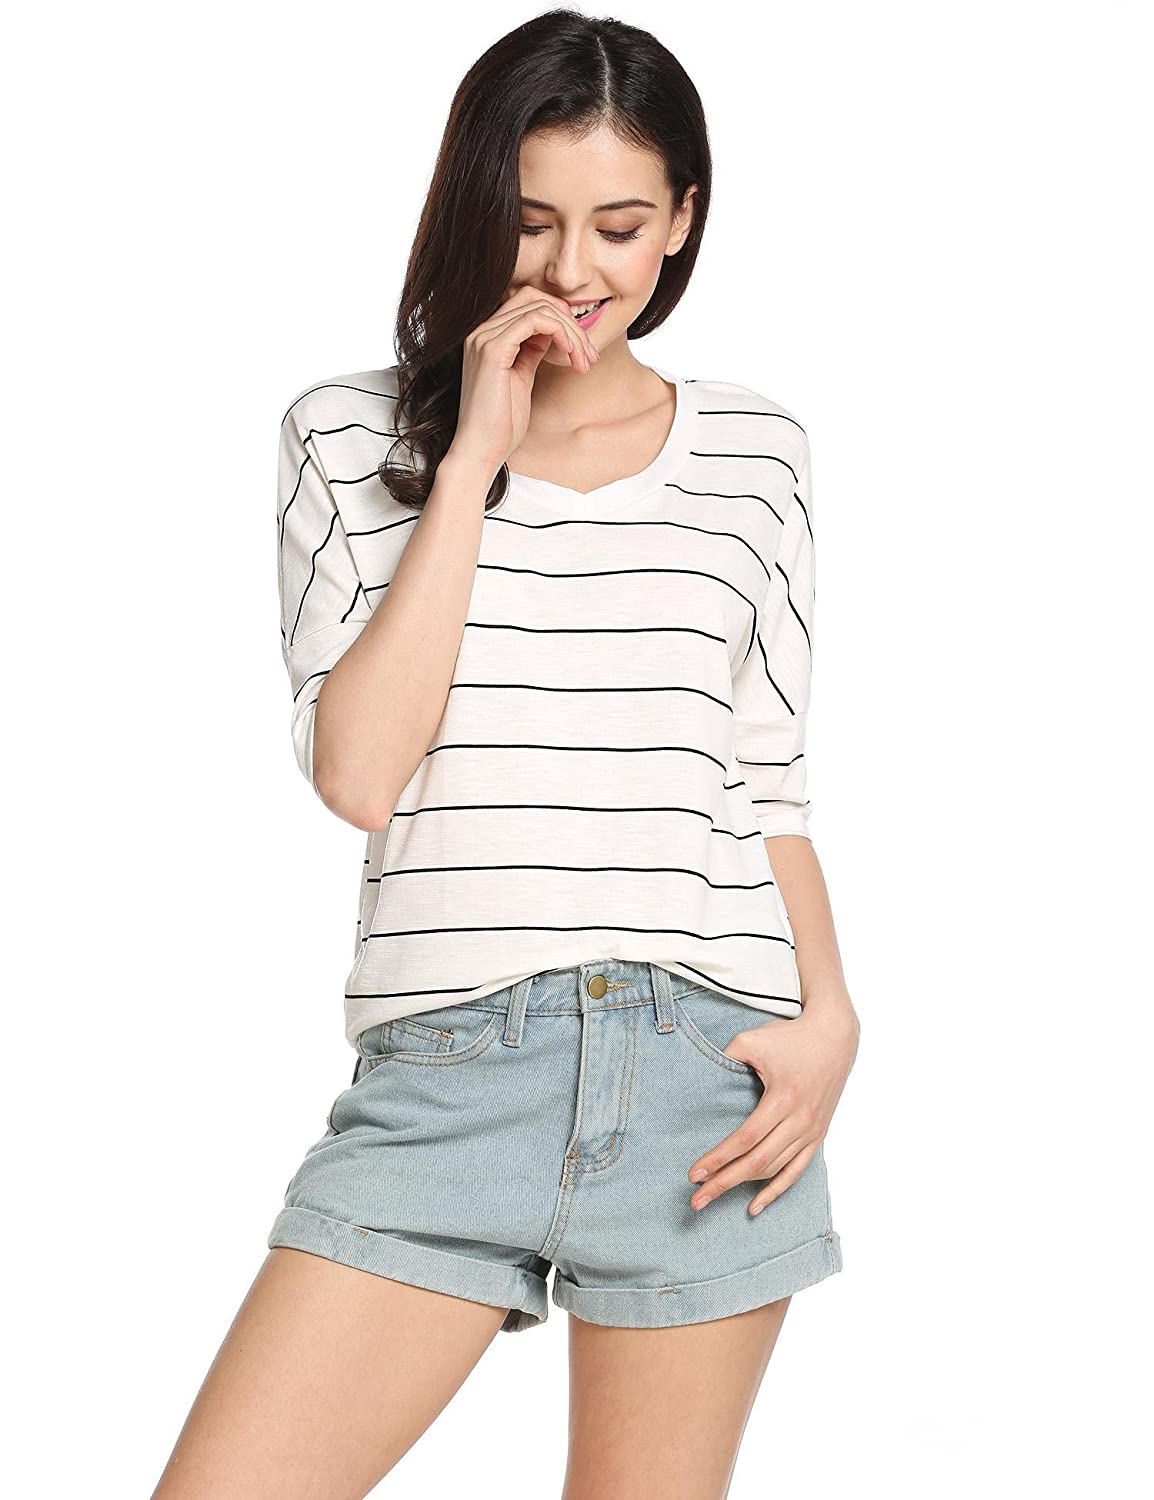 Soteer Women Black and White Striped Half Sleeve T-shirt Tops Slim Fit Stripes Tee S-XXL